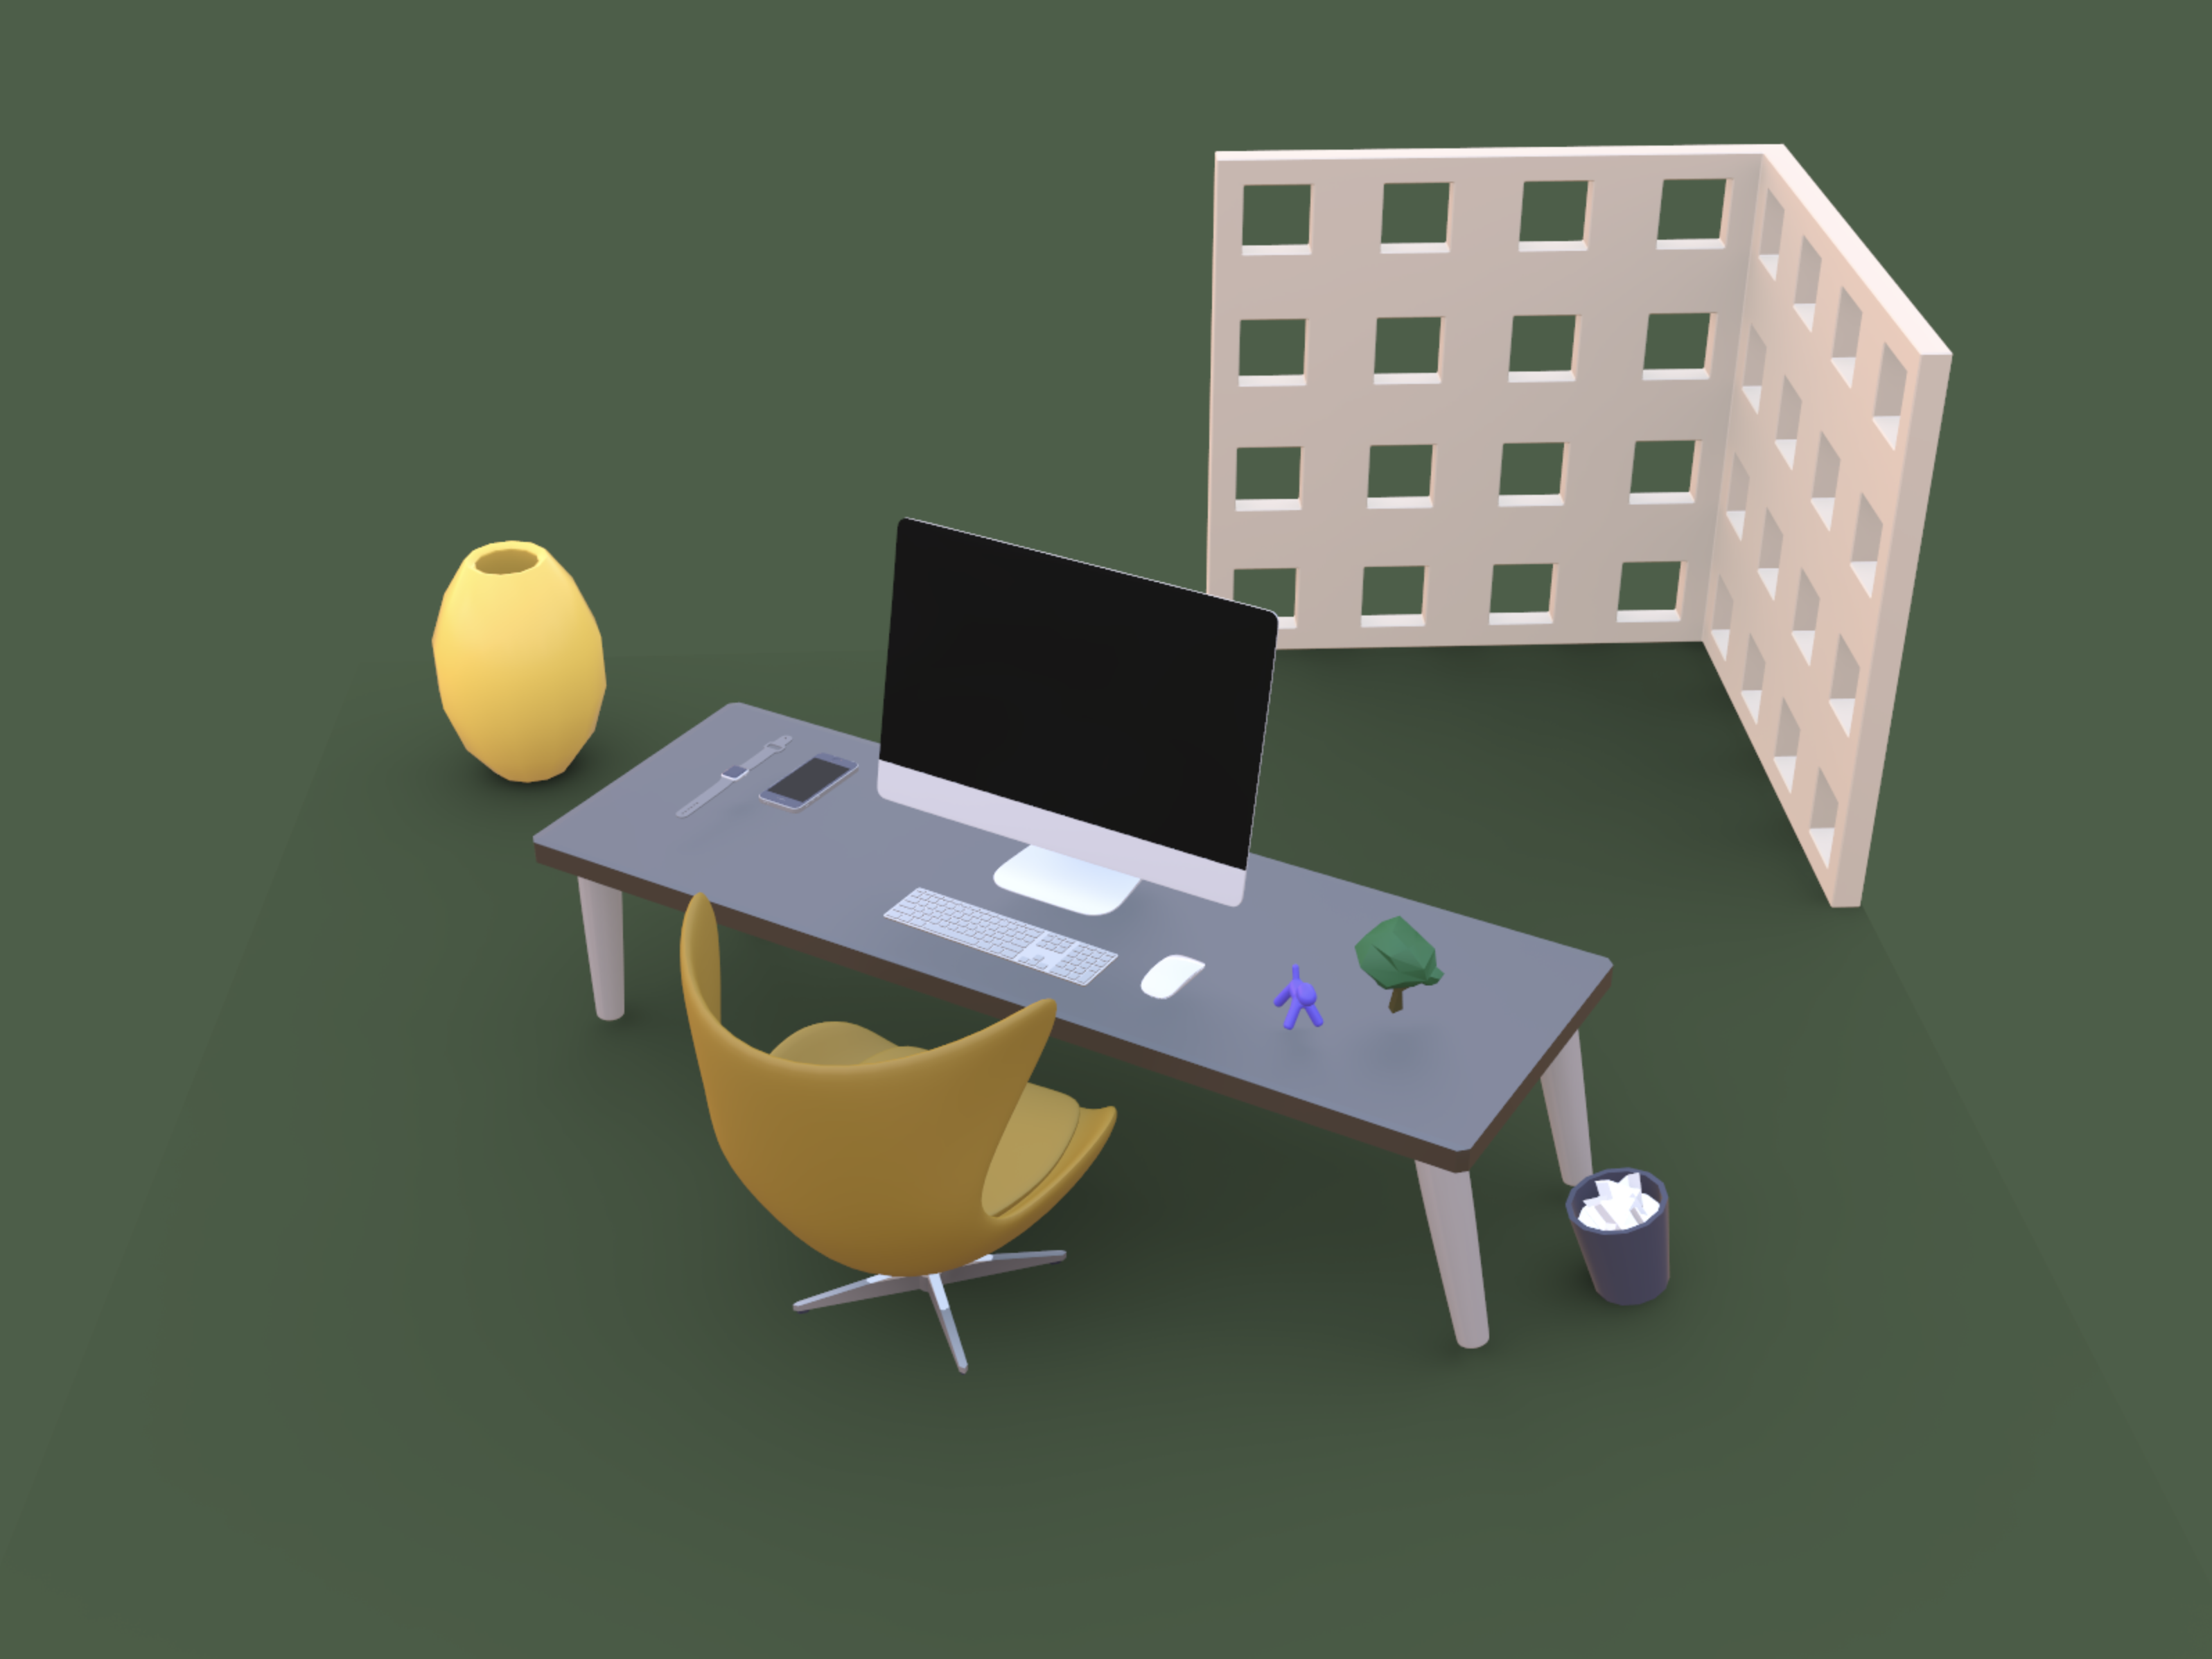 3d Scene Png - Dribbble - 3d-scene.png by Jose Torres